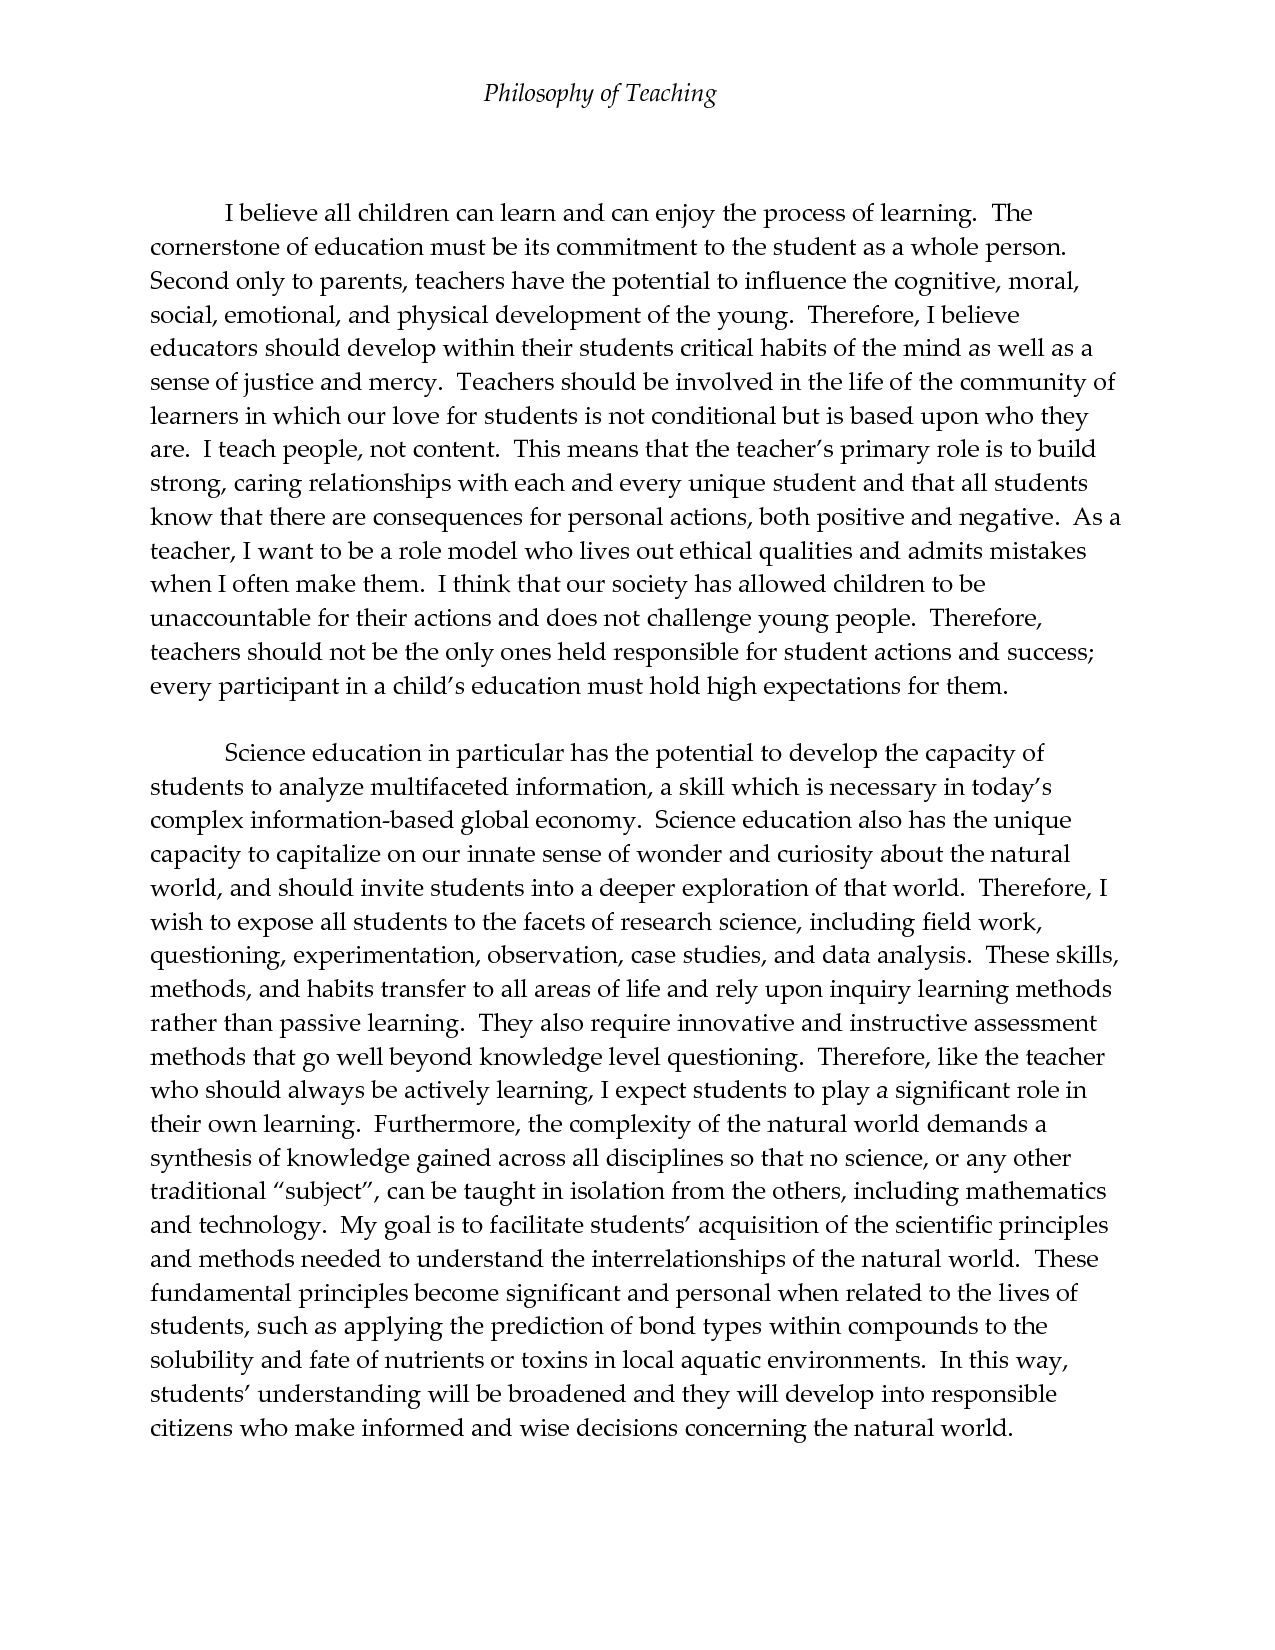 education philosophy essay